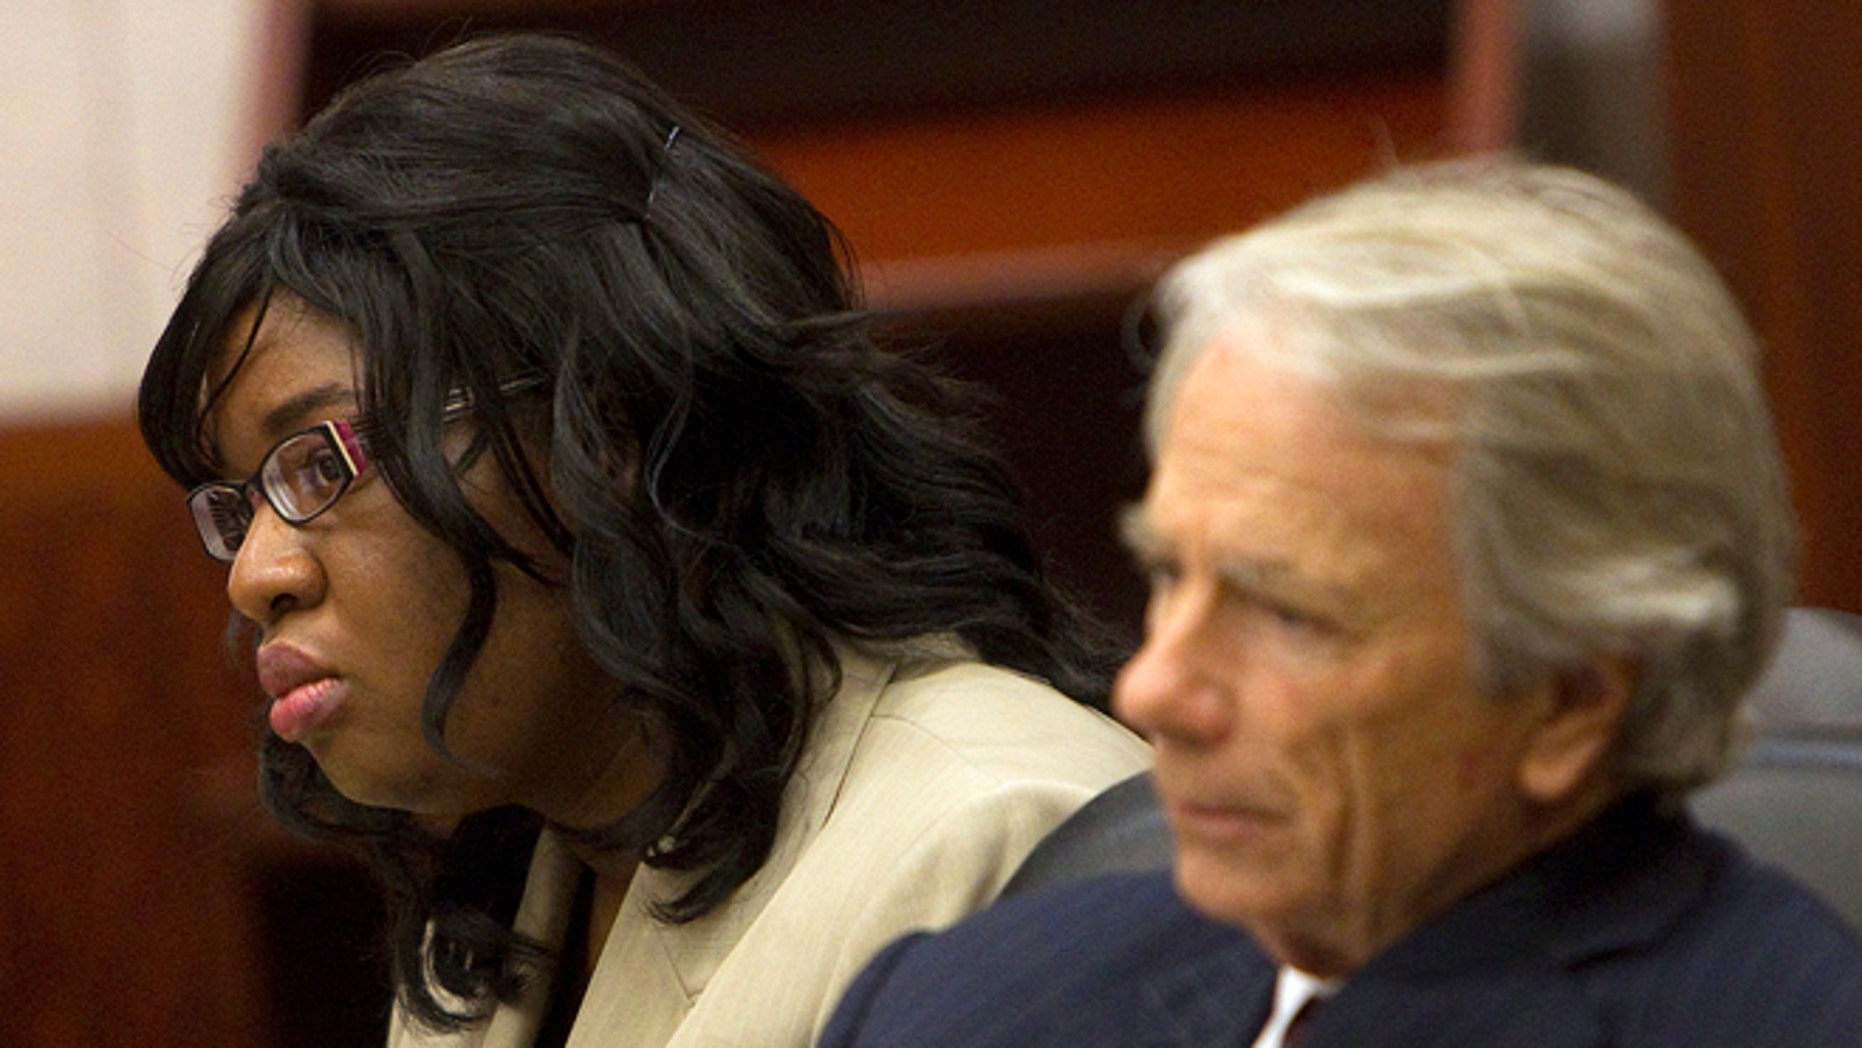 Nov. 12, 2012: In this file photo, home day care operator Jessica Tata, left, and her attorney Mike DeGeurin  listen to the closing arguments in her murder trial for the death of 16-month-old day care fire victim, Elias Castillo, at the Harris County Criminal Justice Center, in Houston.